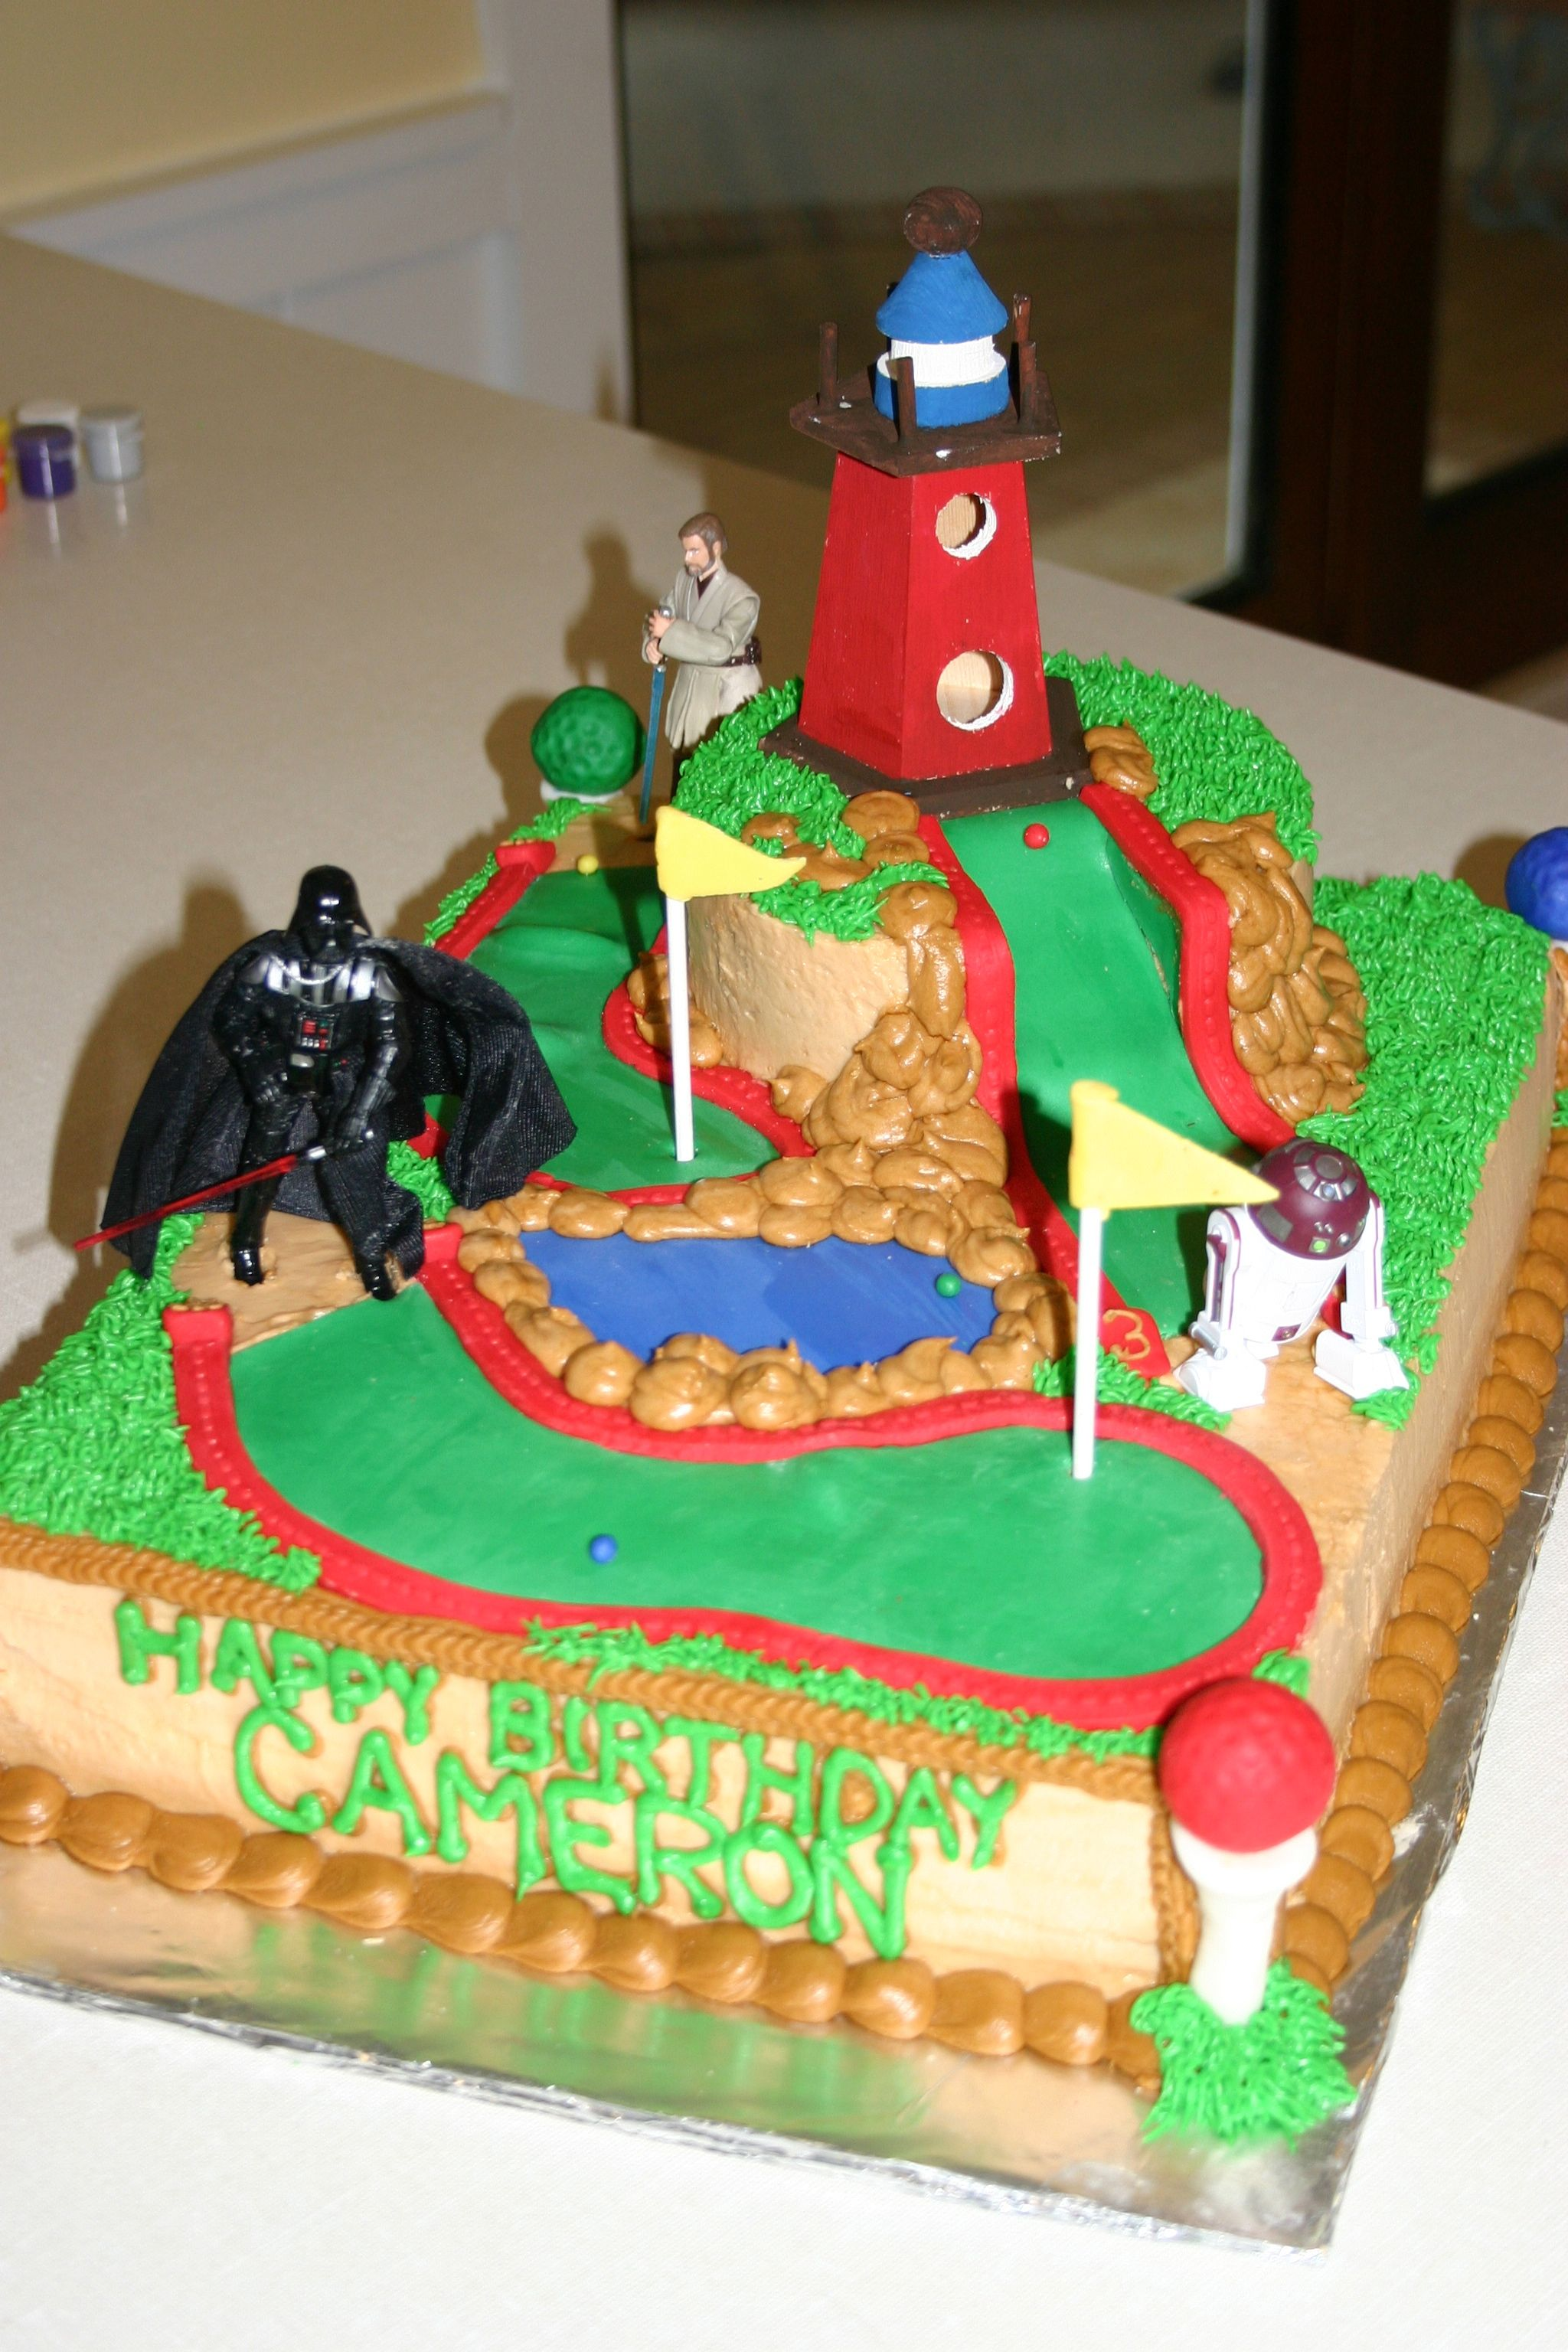 Star Wars mini golf cake 2011 MIni Golf Party Pinterest Cake